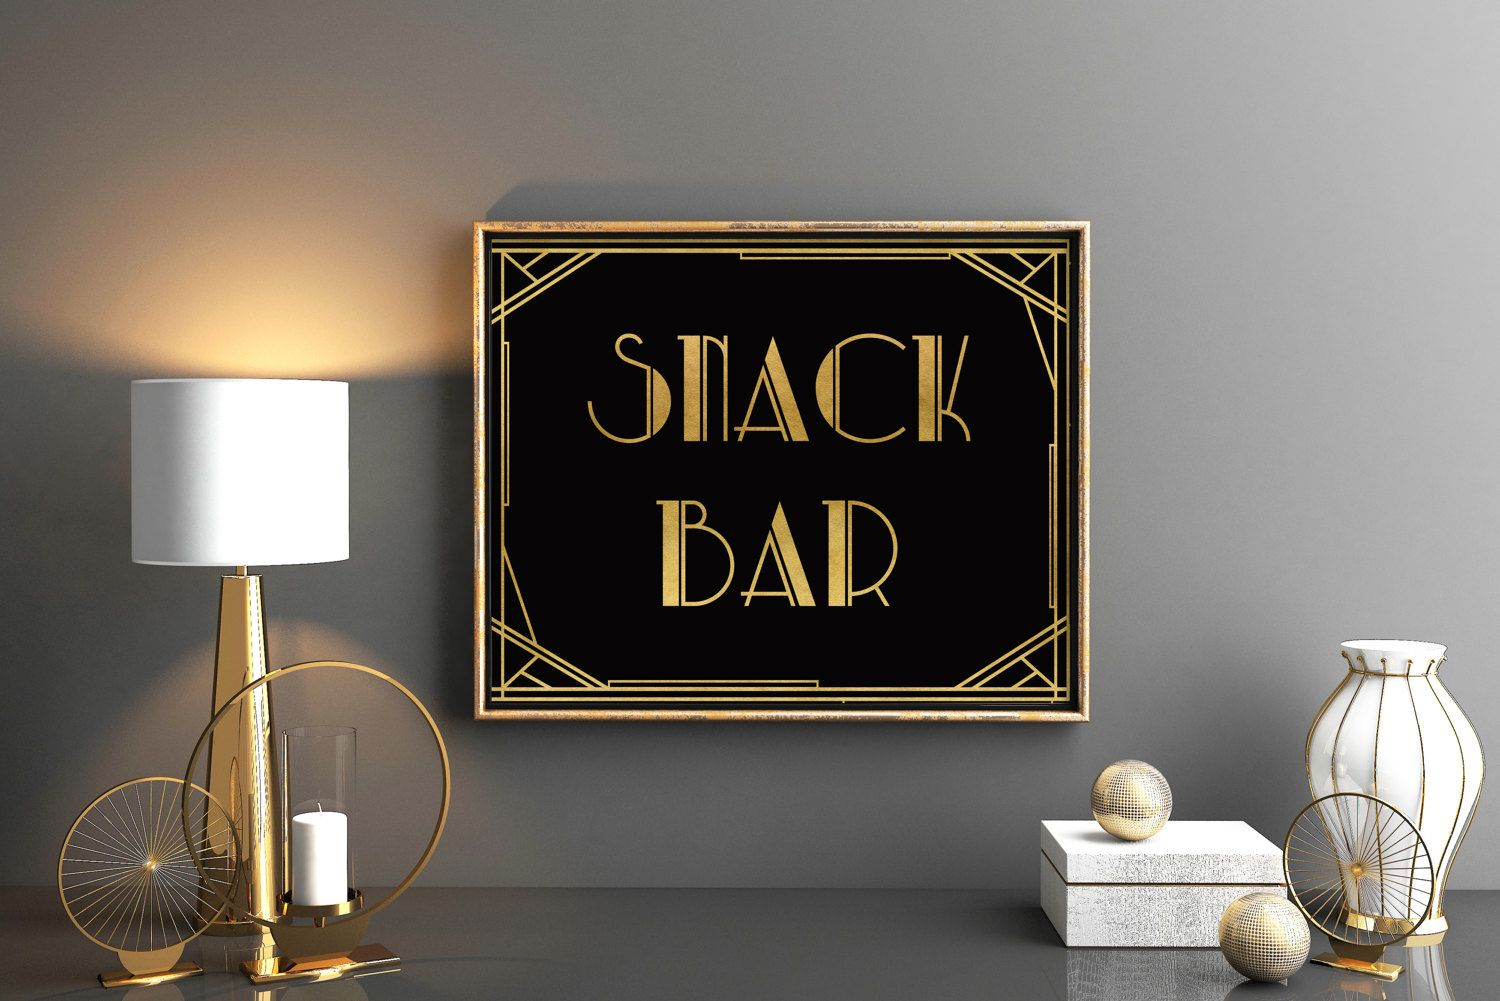 Great Gatsby party sign Snack bar art deco decor sign Roaring ...